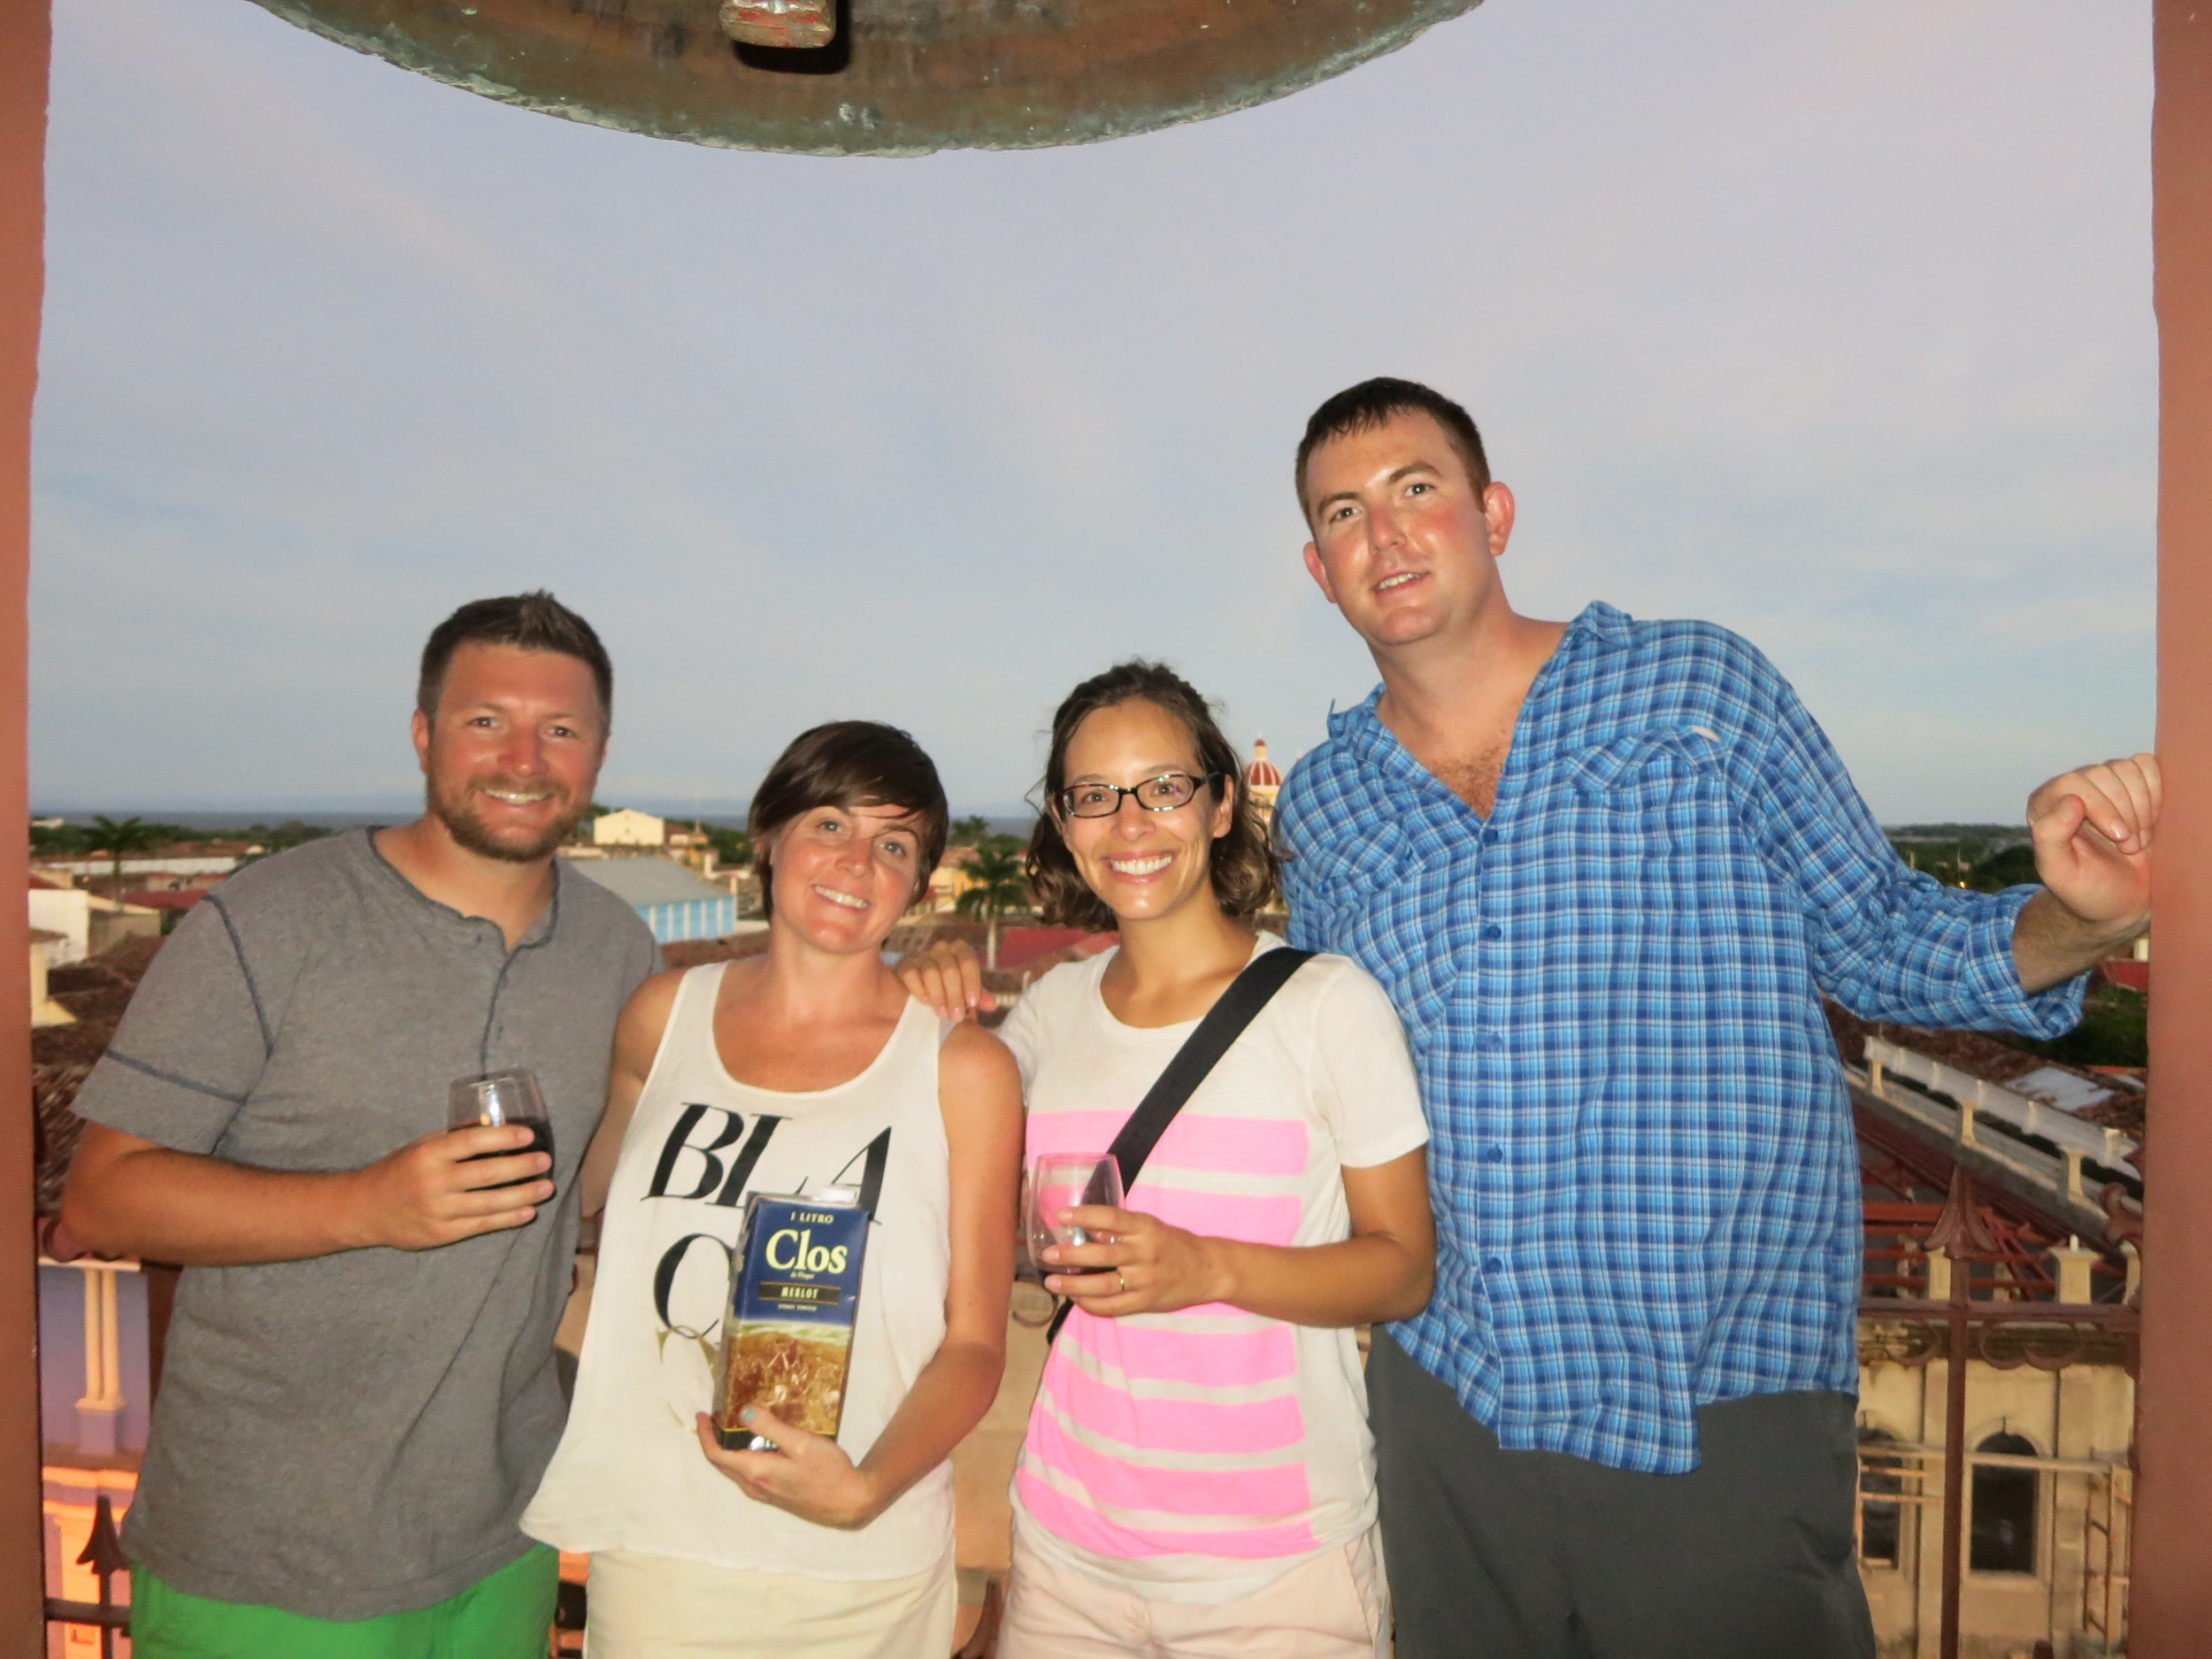 The 4 of us our last night together in Granada, enjoying boxed wine on the church tower overlooking the city.